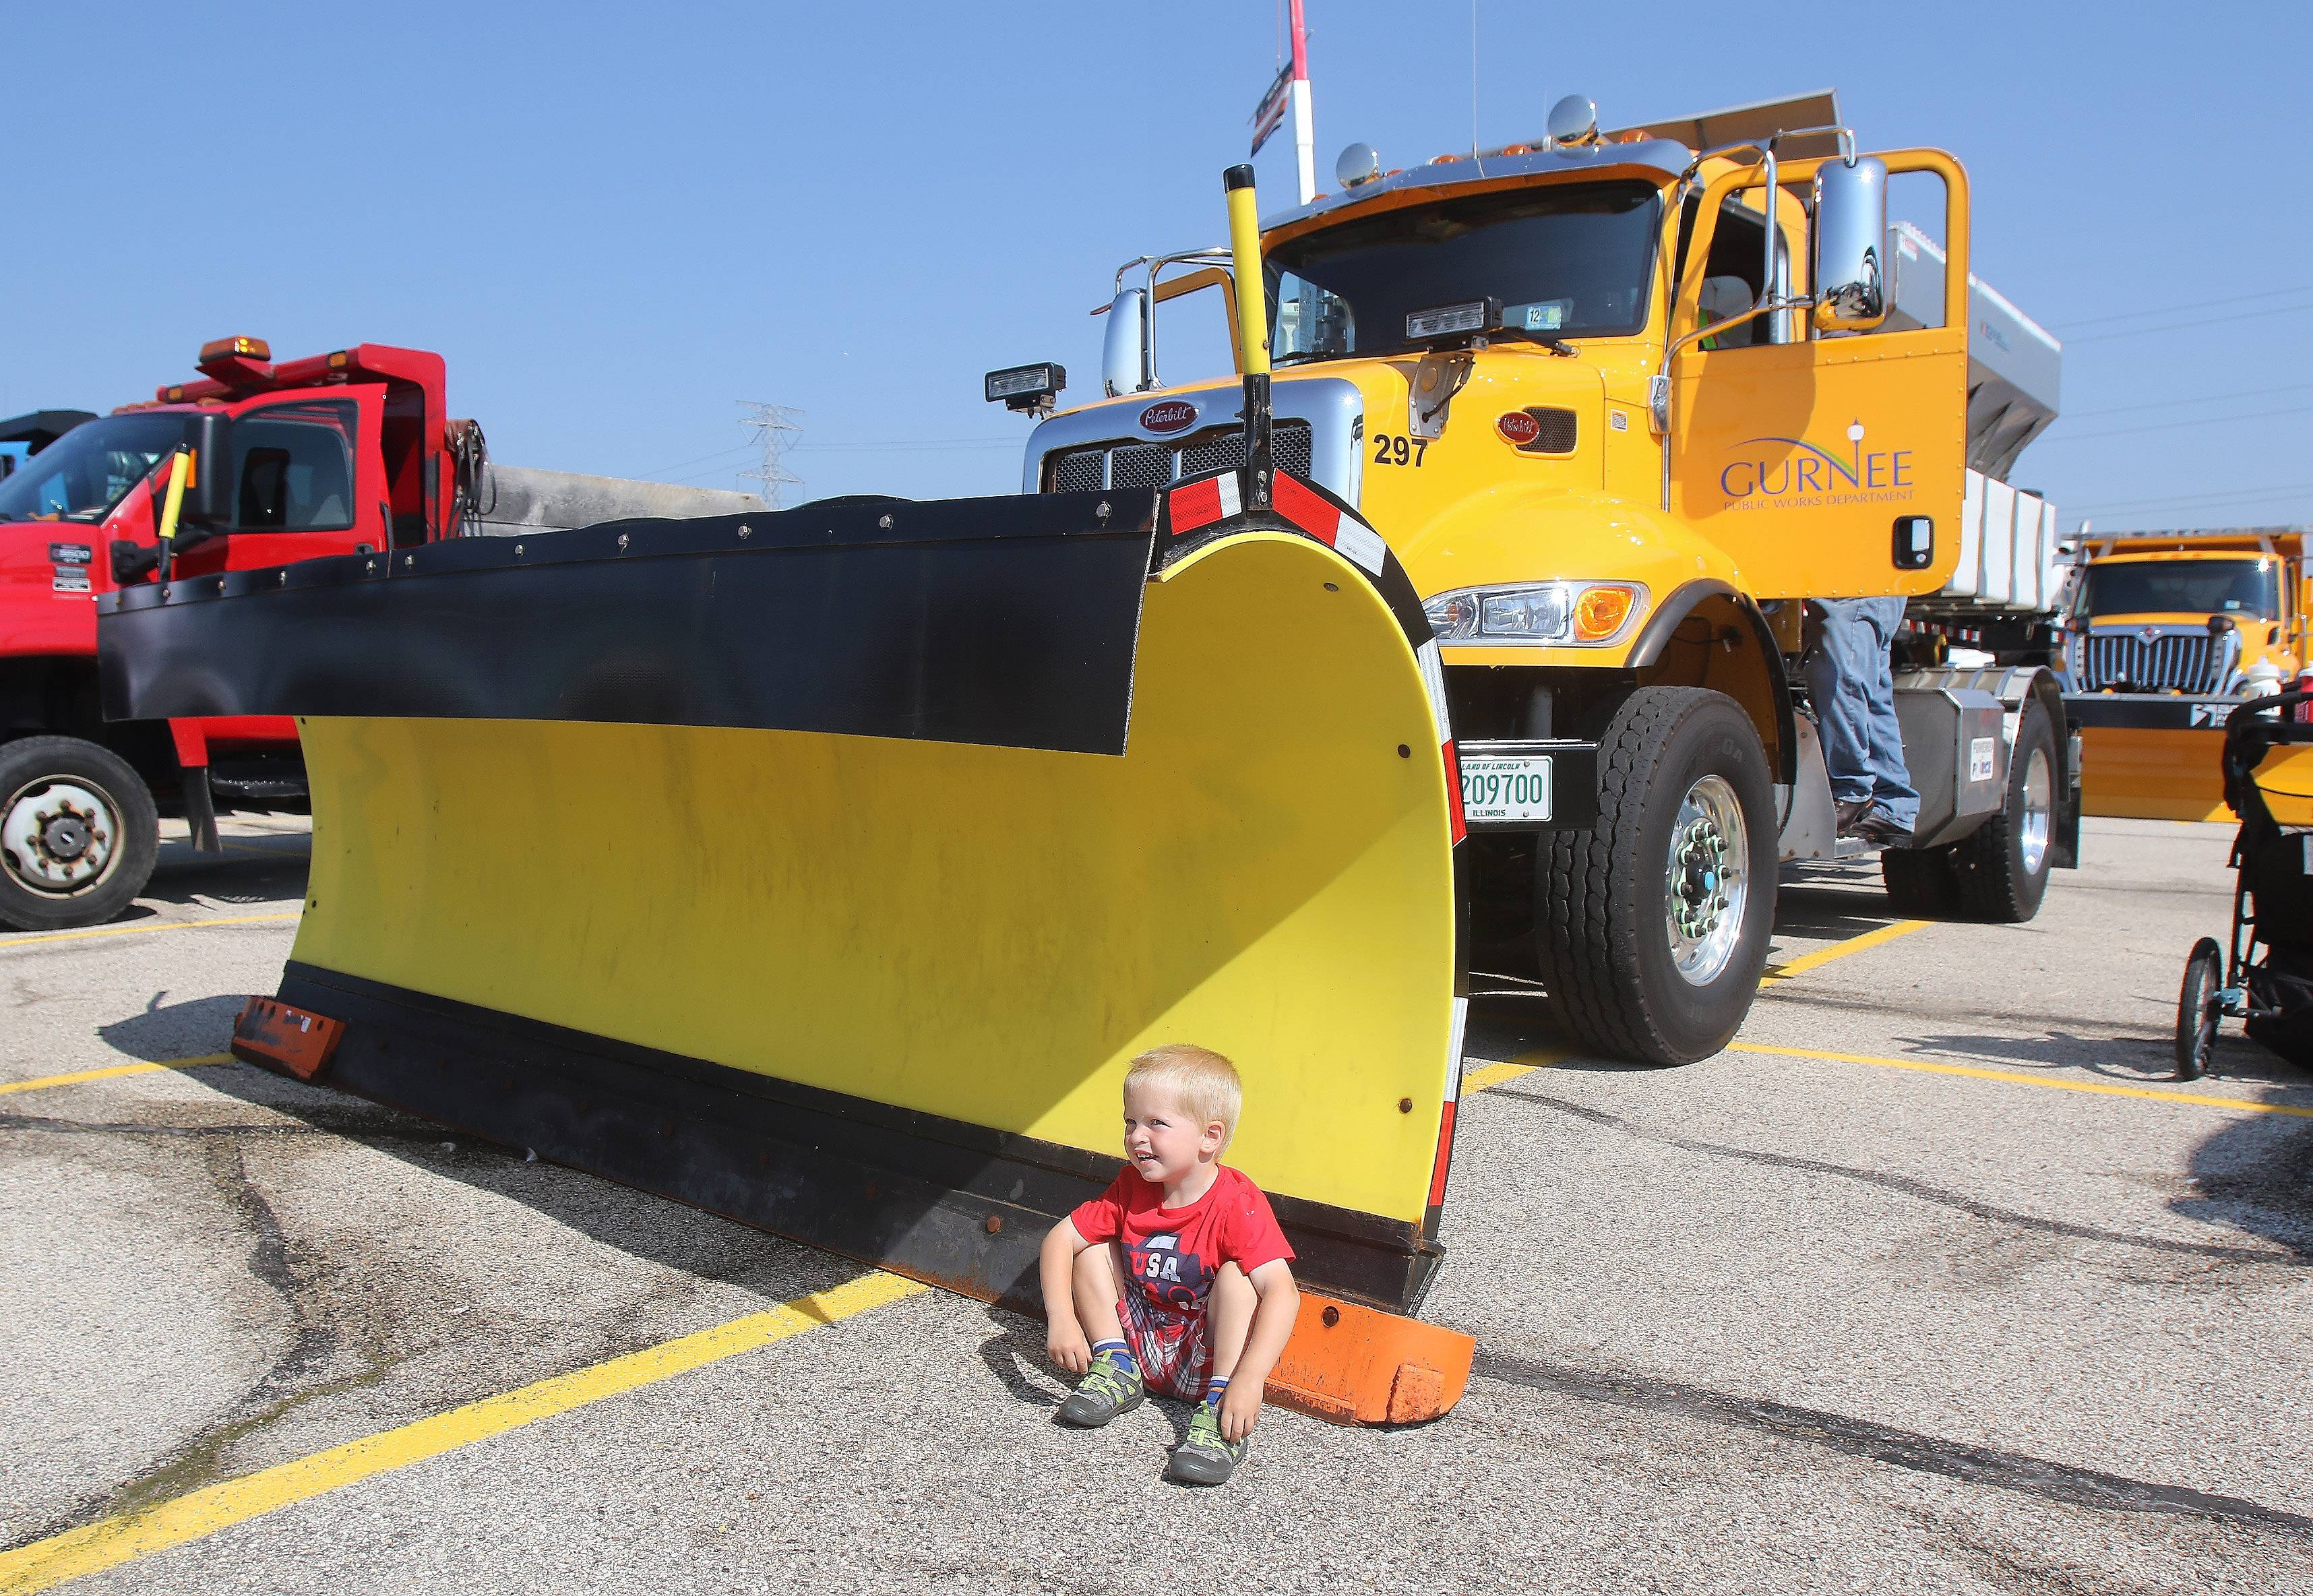 Liam Kessell, 2, of McHenry sits by the Gurnee Public Works Department snowplow at the Touch-A-Truck event Tuesday at the Lake County Fairgrounds. The drive was held in partnership with the American Public Works Association Lake Branch to promote public works workers as first responders.